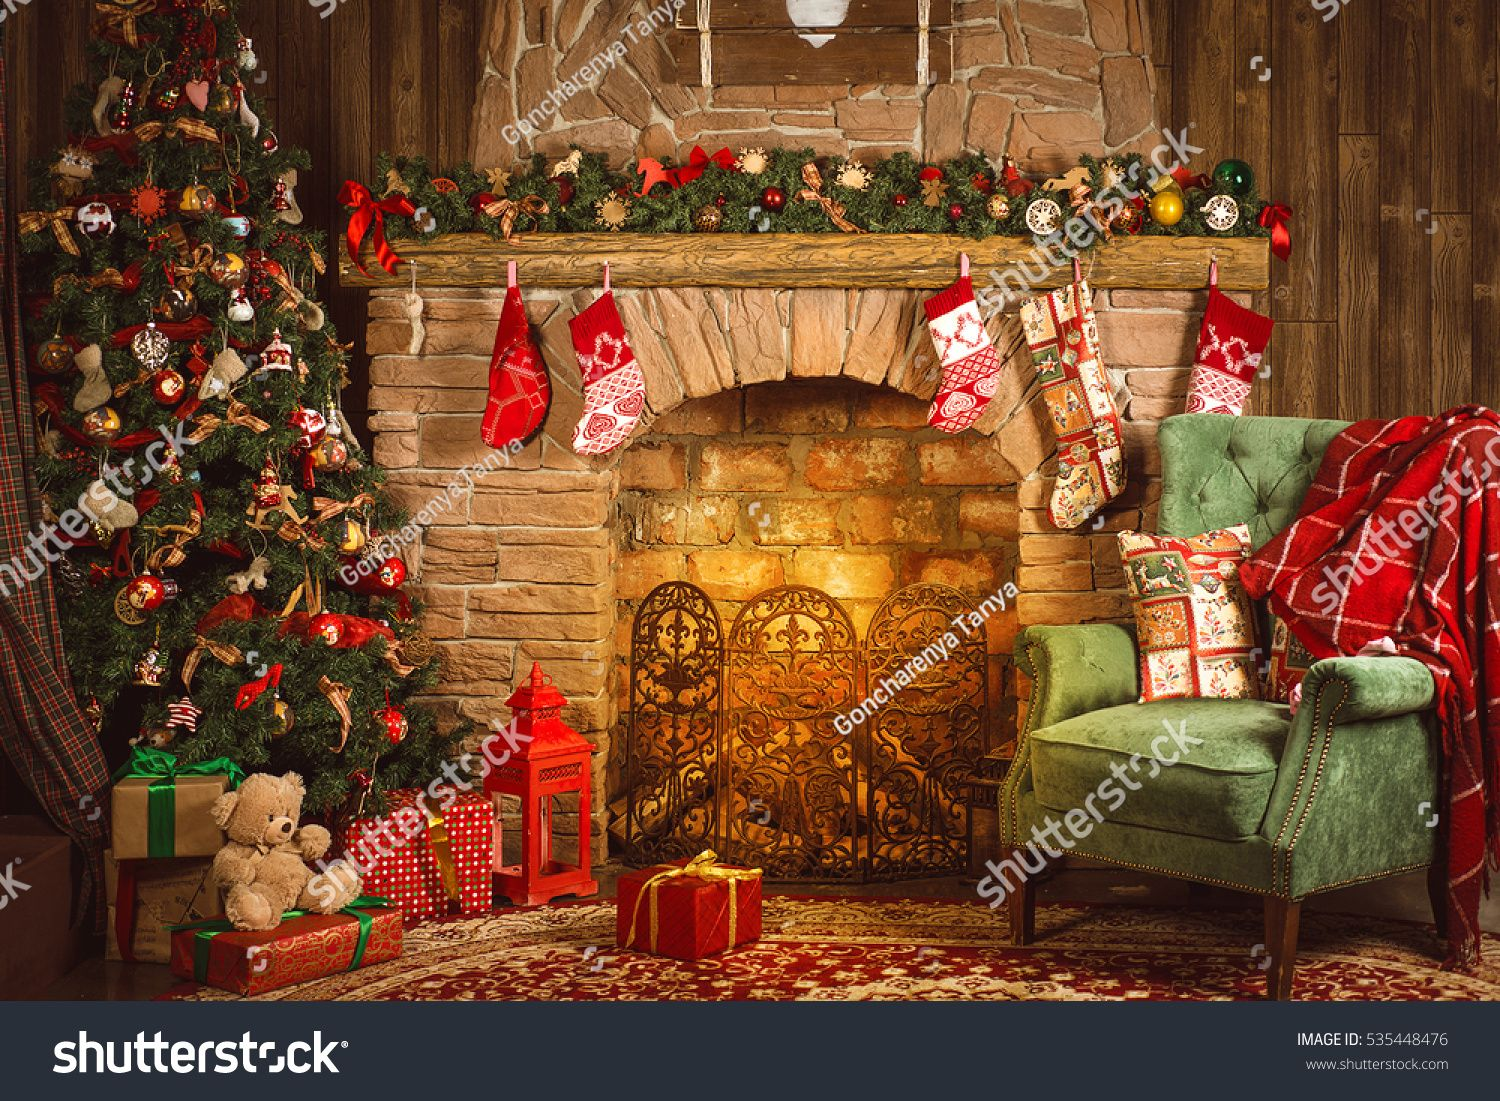 Christmas Interior Room Fireplace Christmas Tree Green Chair With A Red Blanket And Gif Christmas Interiors Merry Christmas And Happy New Year Christmas Tree